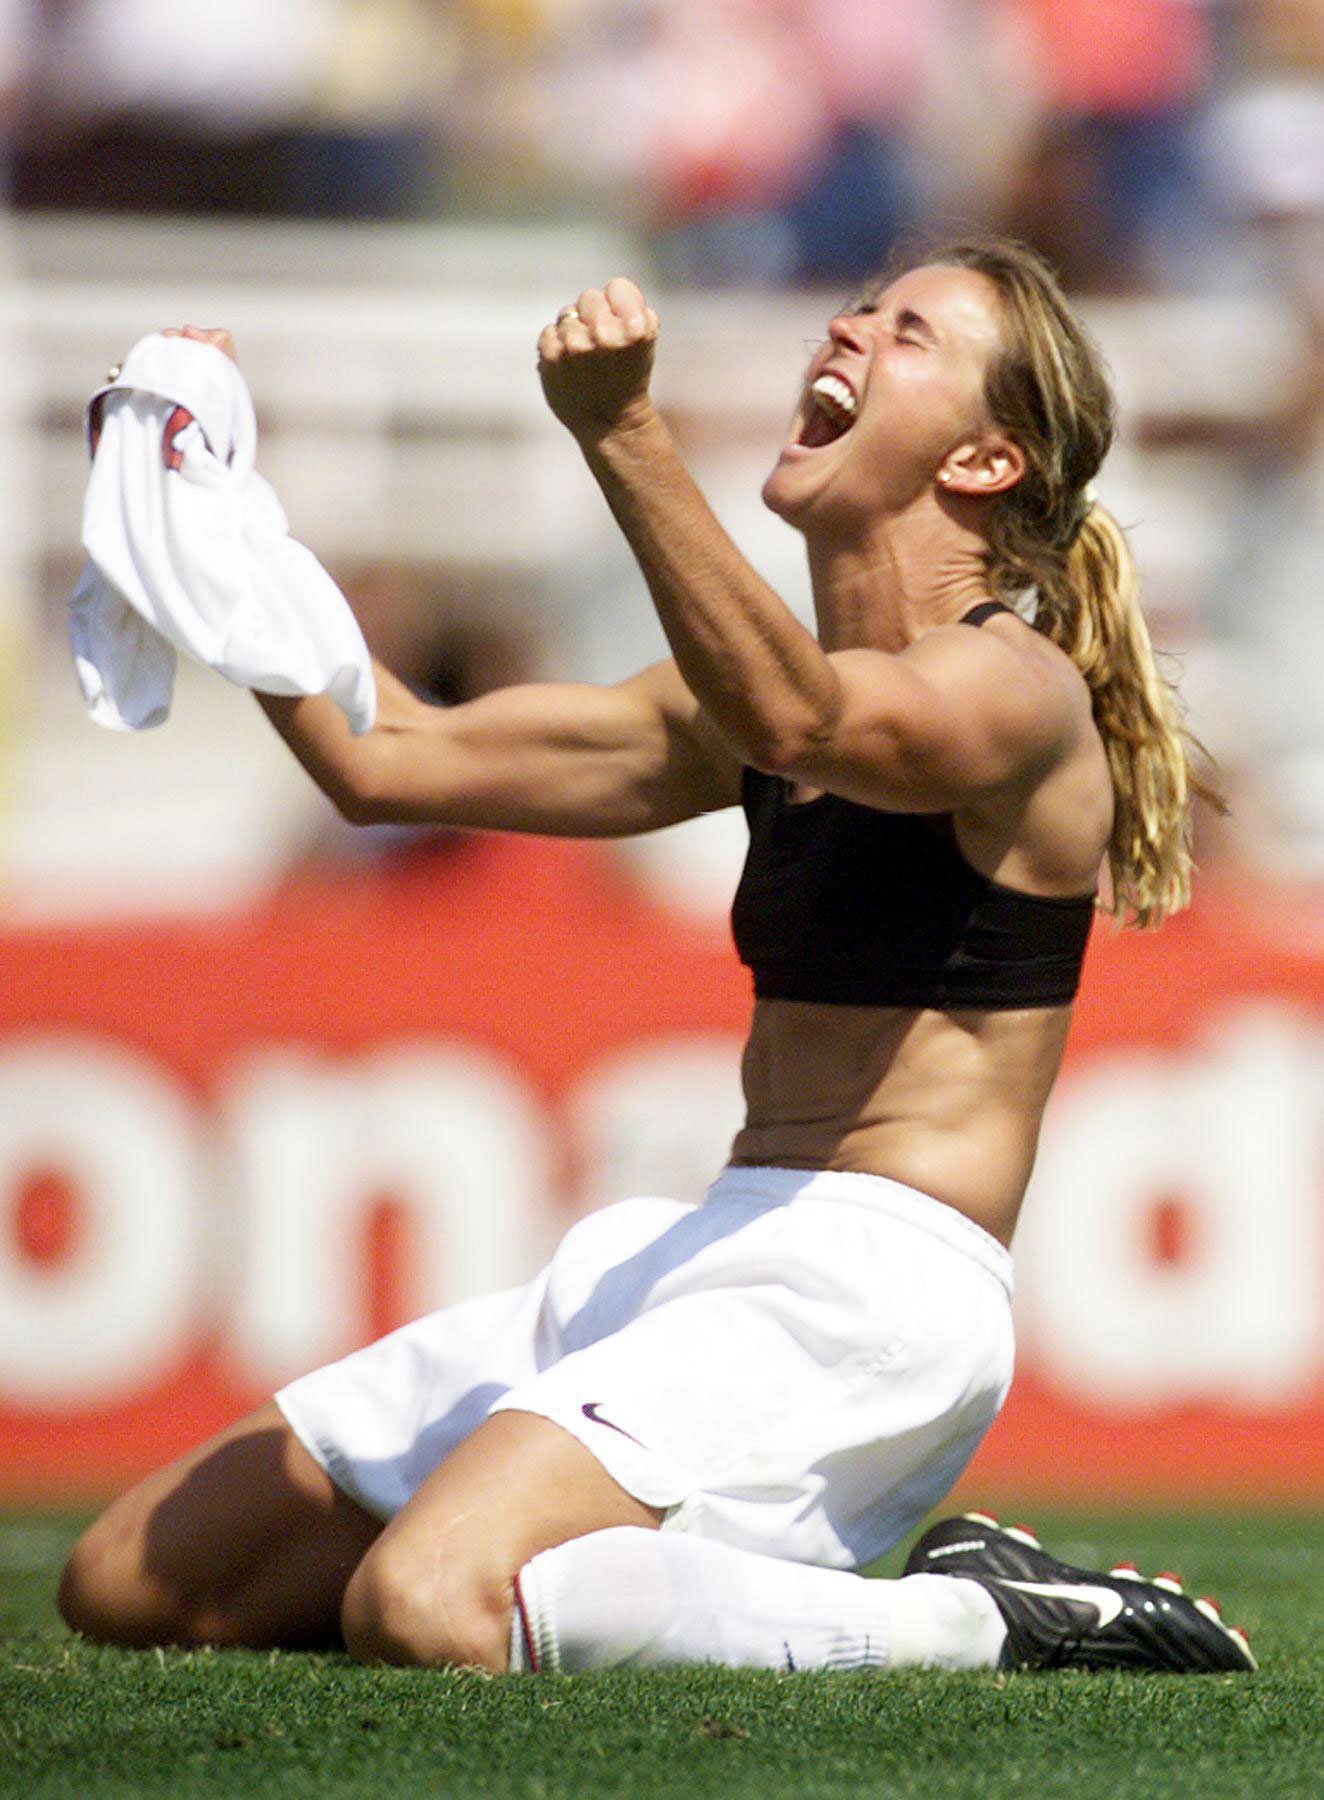 <strong>Brandi Chastain's Women's World Cup Bra</strong> After scoring the winning penalty kick against China in the 1999 Women's World Cup, Chastain took off her jersey and dropped to her knees in a now historic moment of celebration. The move landed her on the cover of both <i>Sports Illustrated</i> and <i>Newsweek</i>.